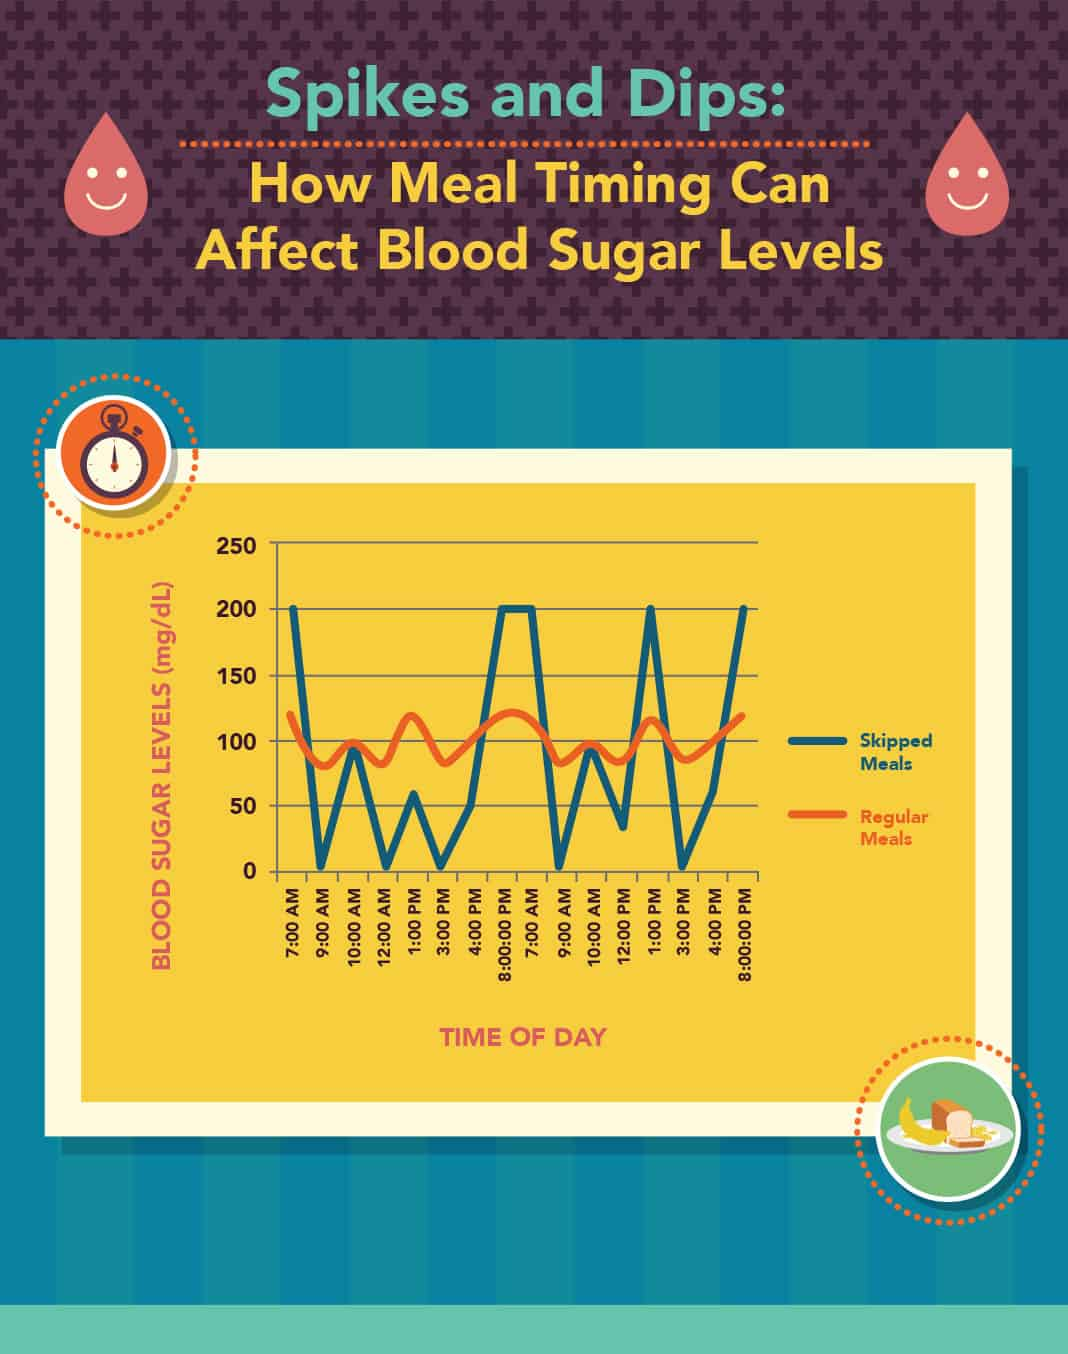 How Meal Timing Can Affect Blood Sugar Levels